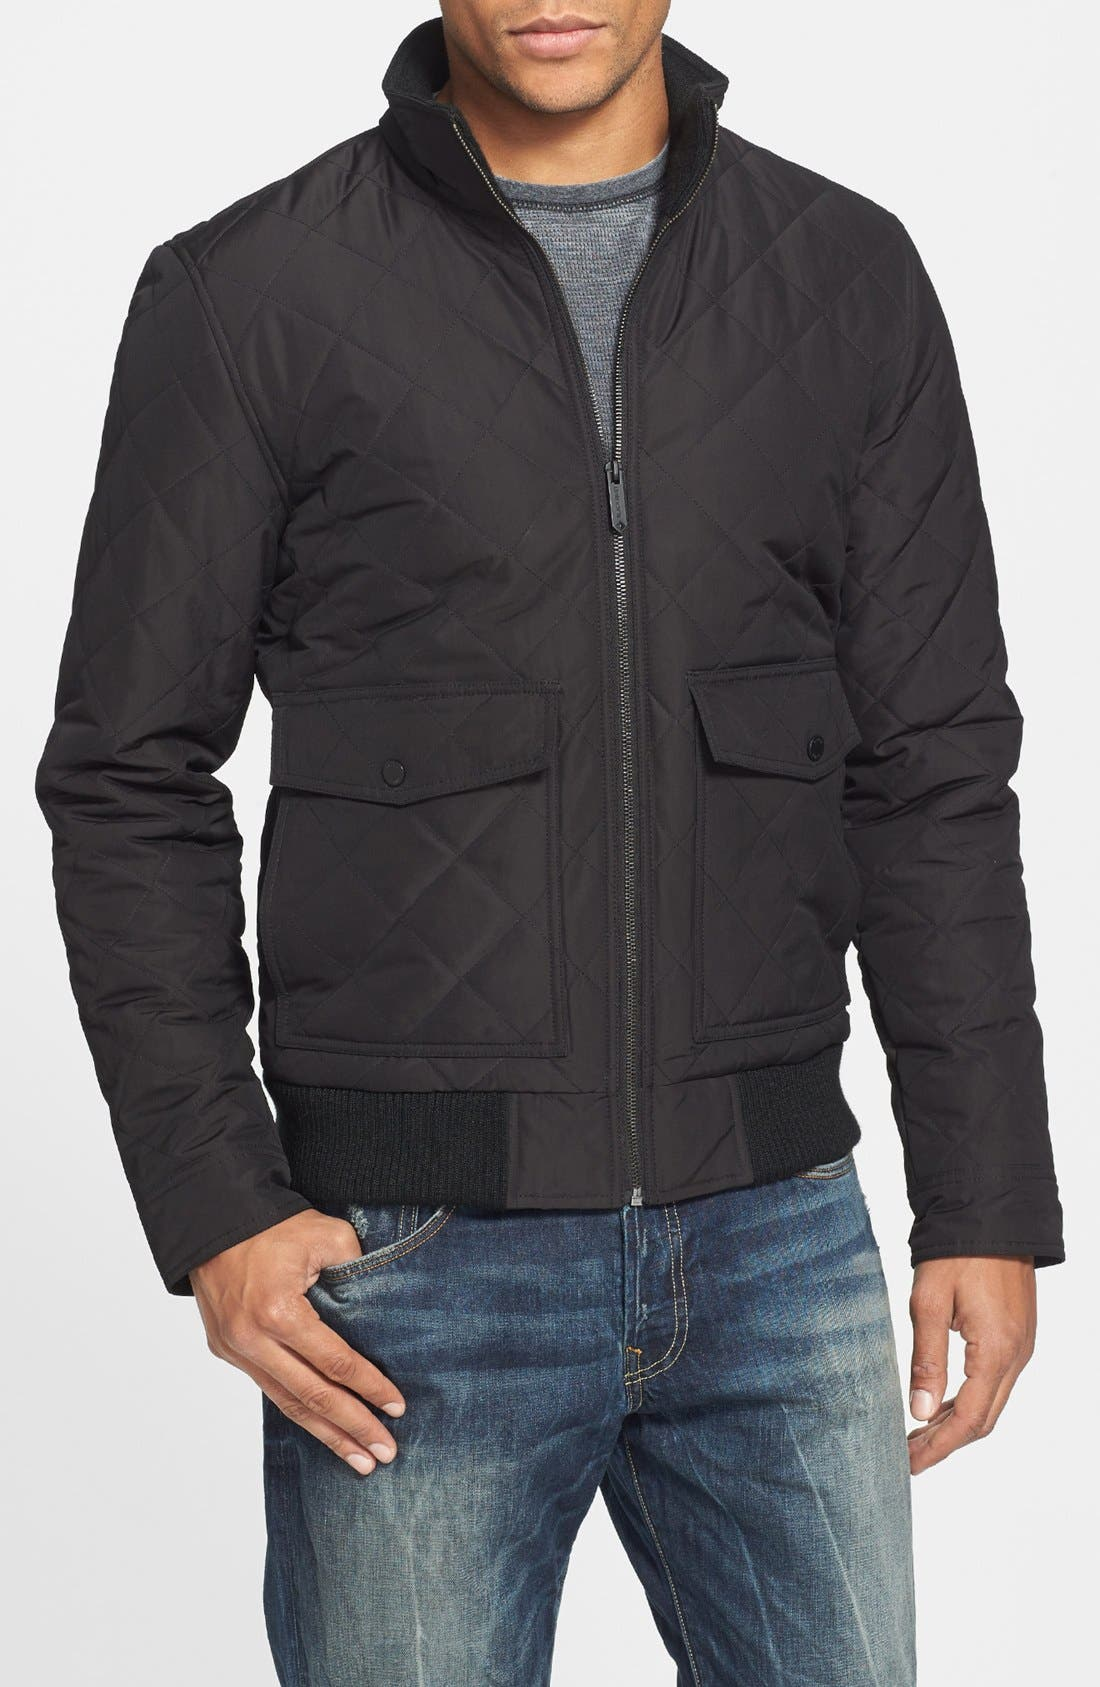 Alternate Image 1 Selected - Black Rivet Diamond Quilted Bomber Jacket